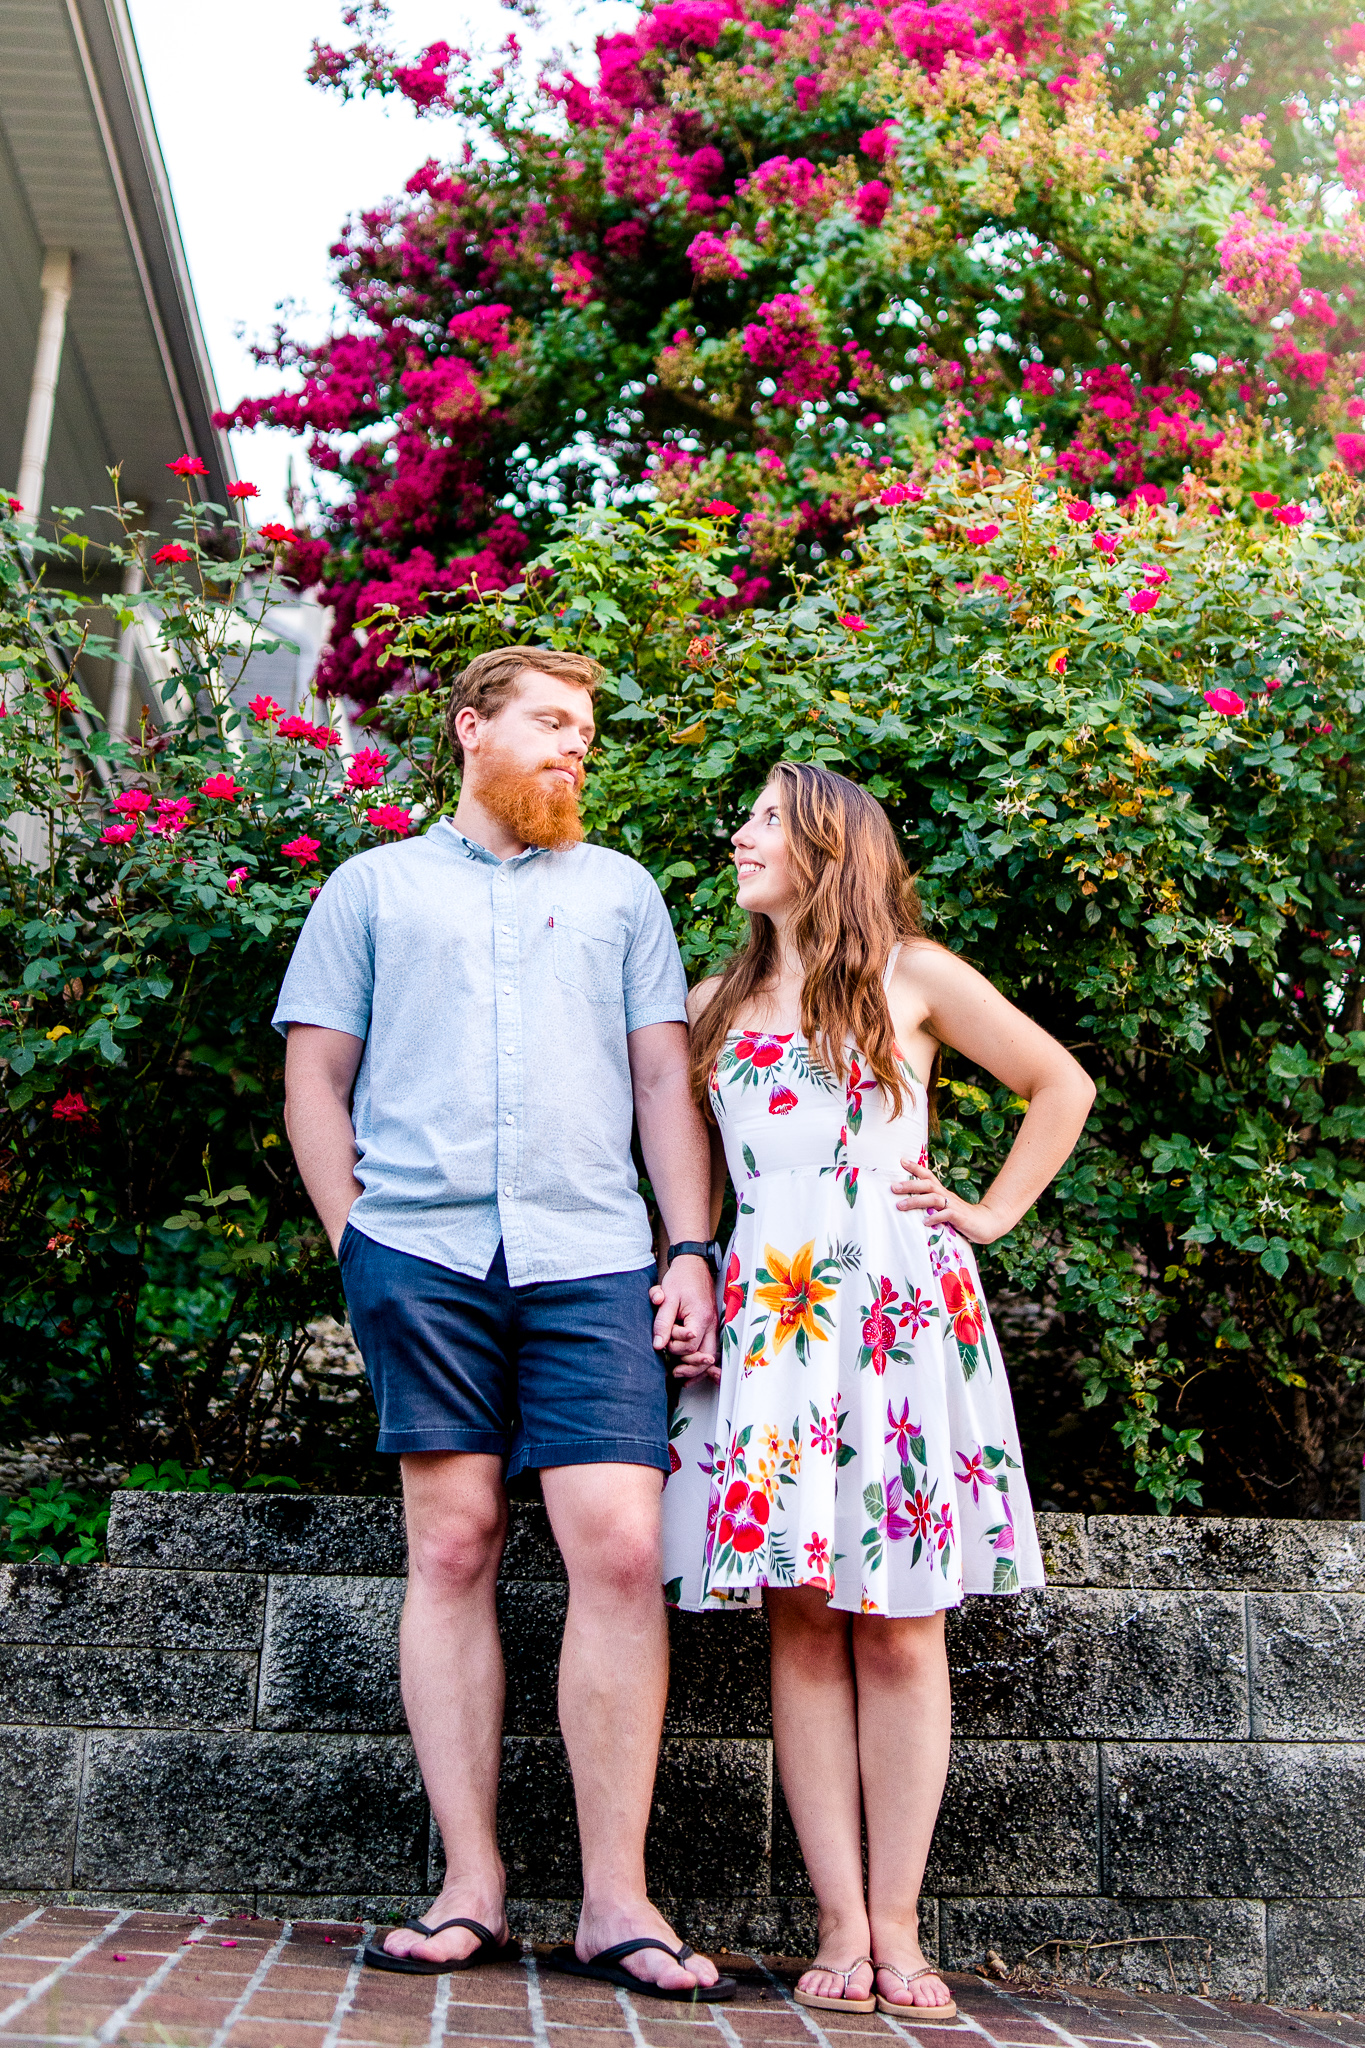 An engaged couple stands together in front of a flower garden during their summer sunset engagement session in Historic Occoquan, Northern Virginia